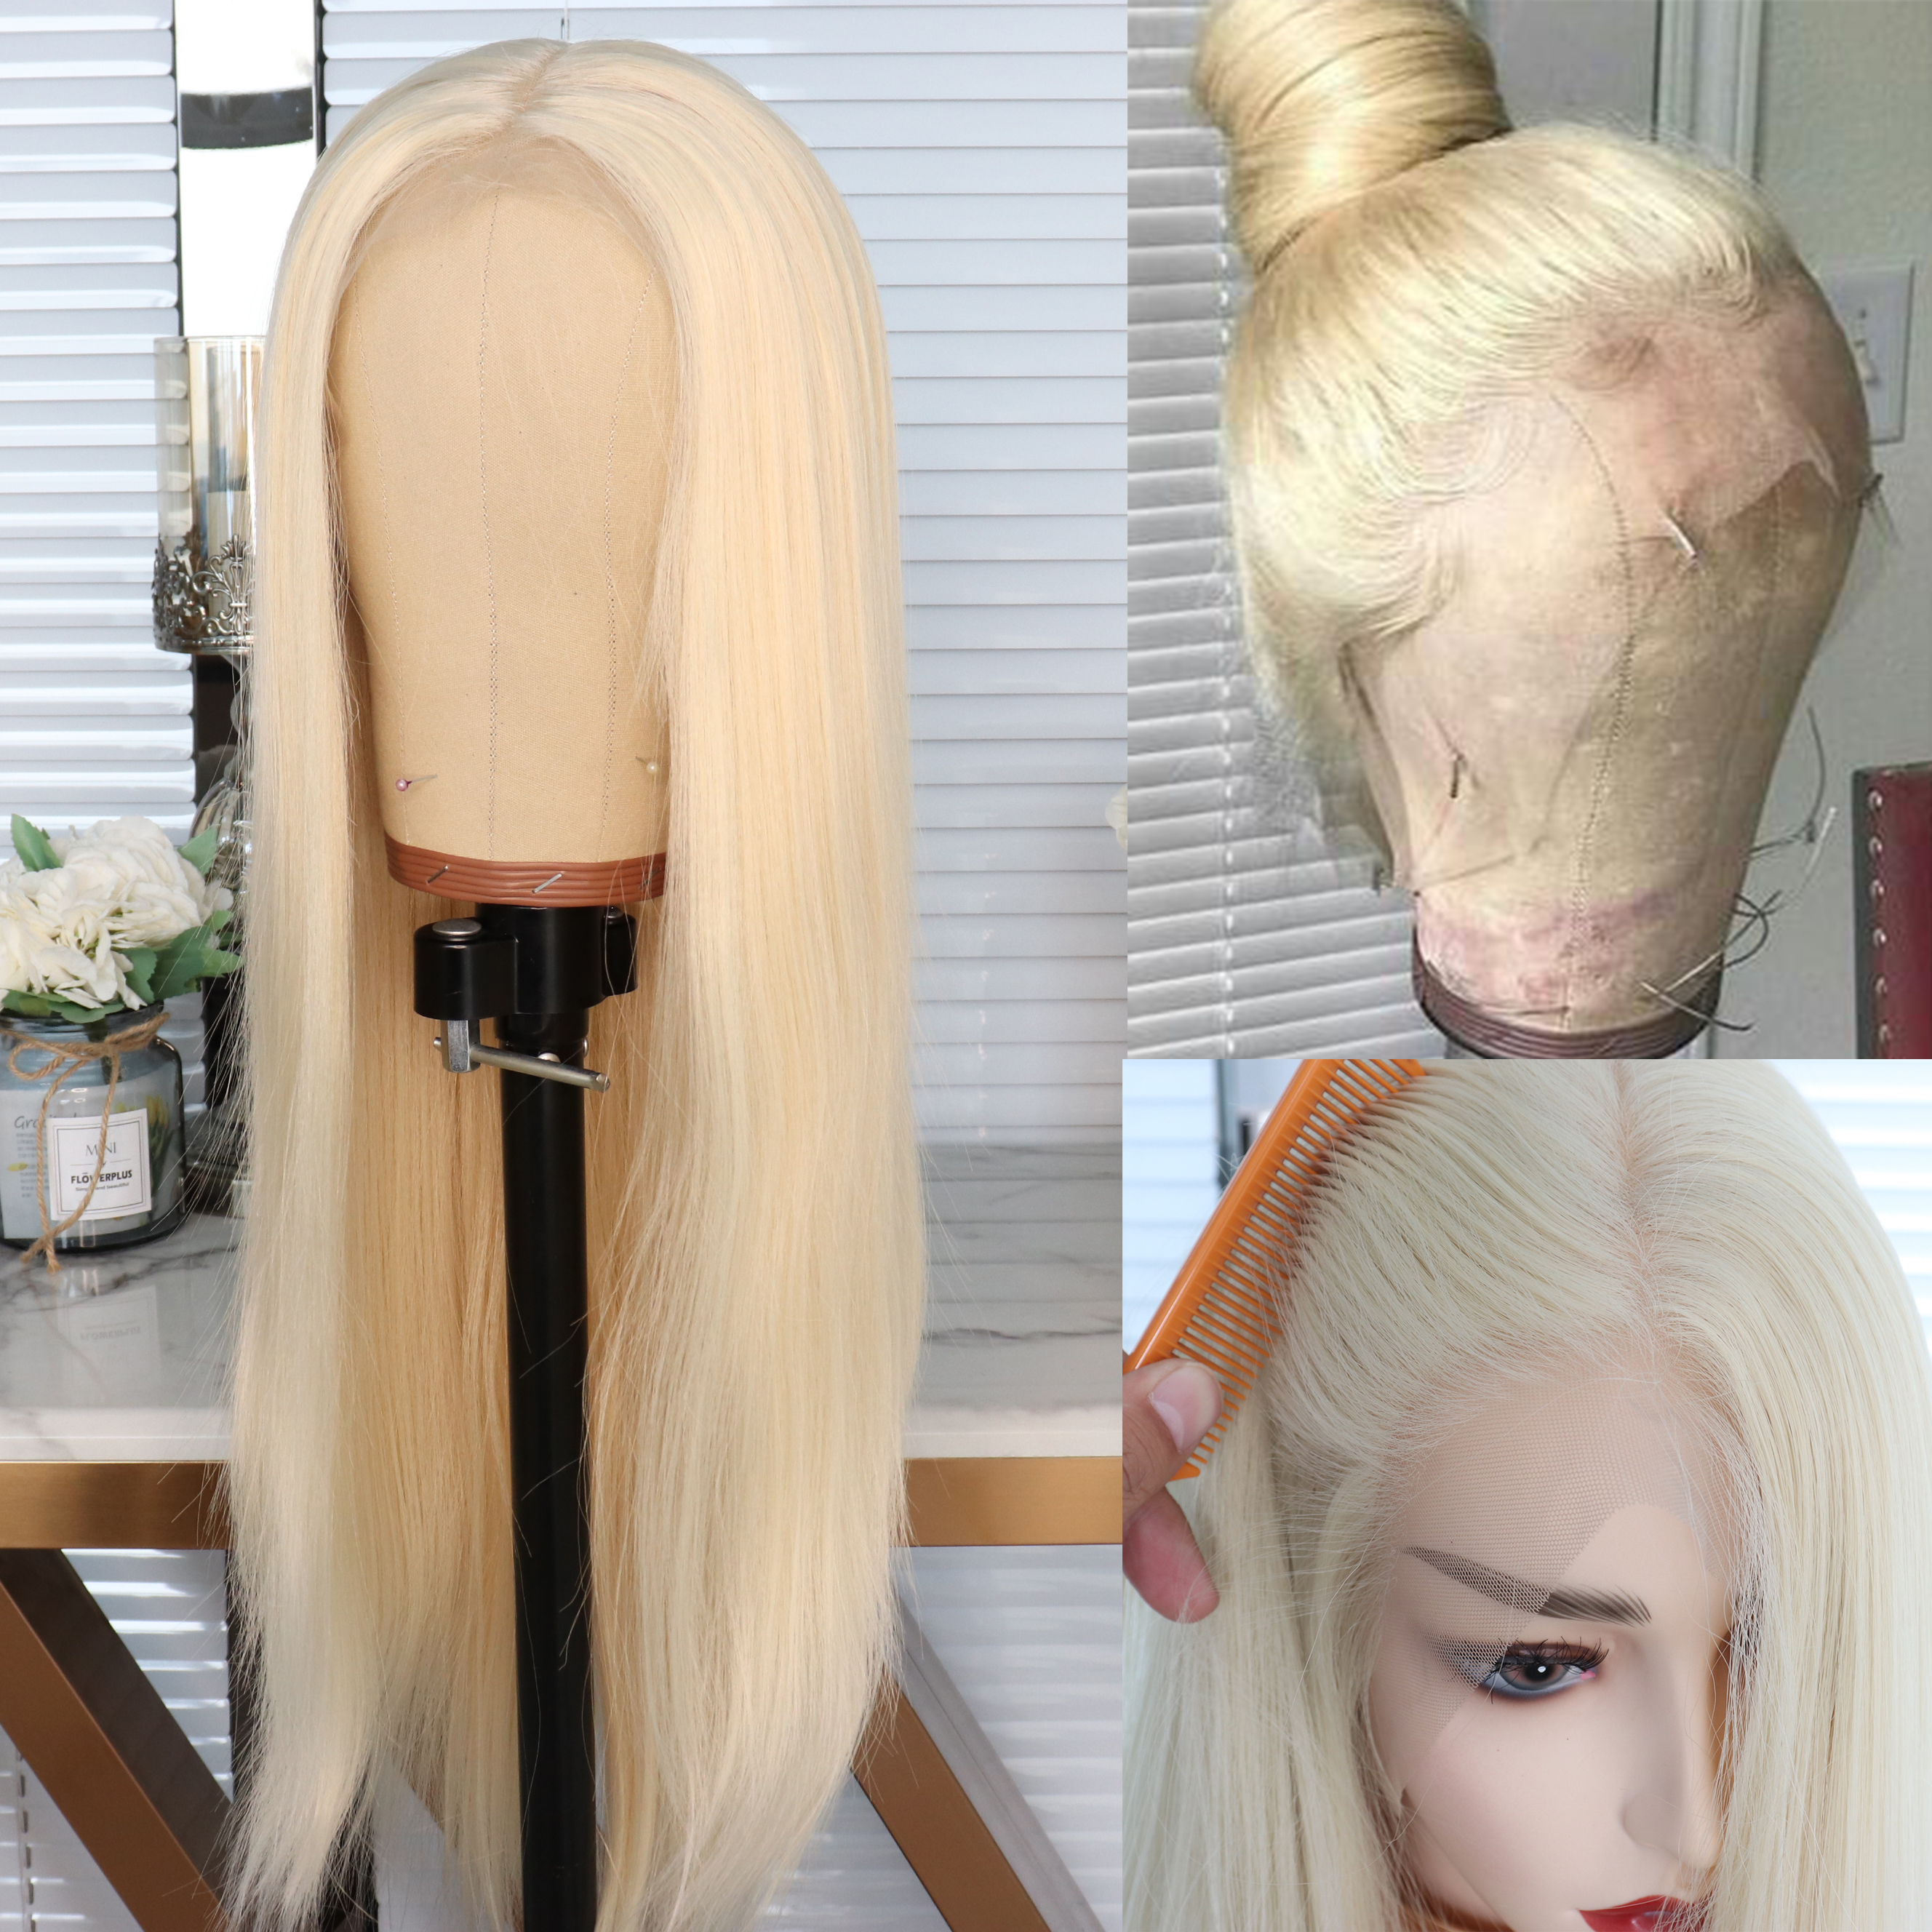 Newness Wigs Lace-Wig Blonde Heat-Resistant Long Straight Synthetic Silky Pre-Plucked title=